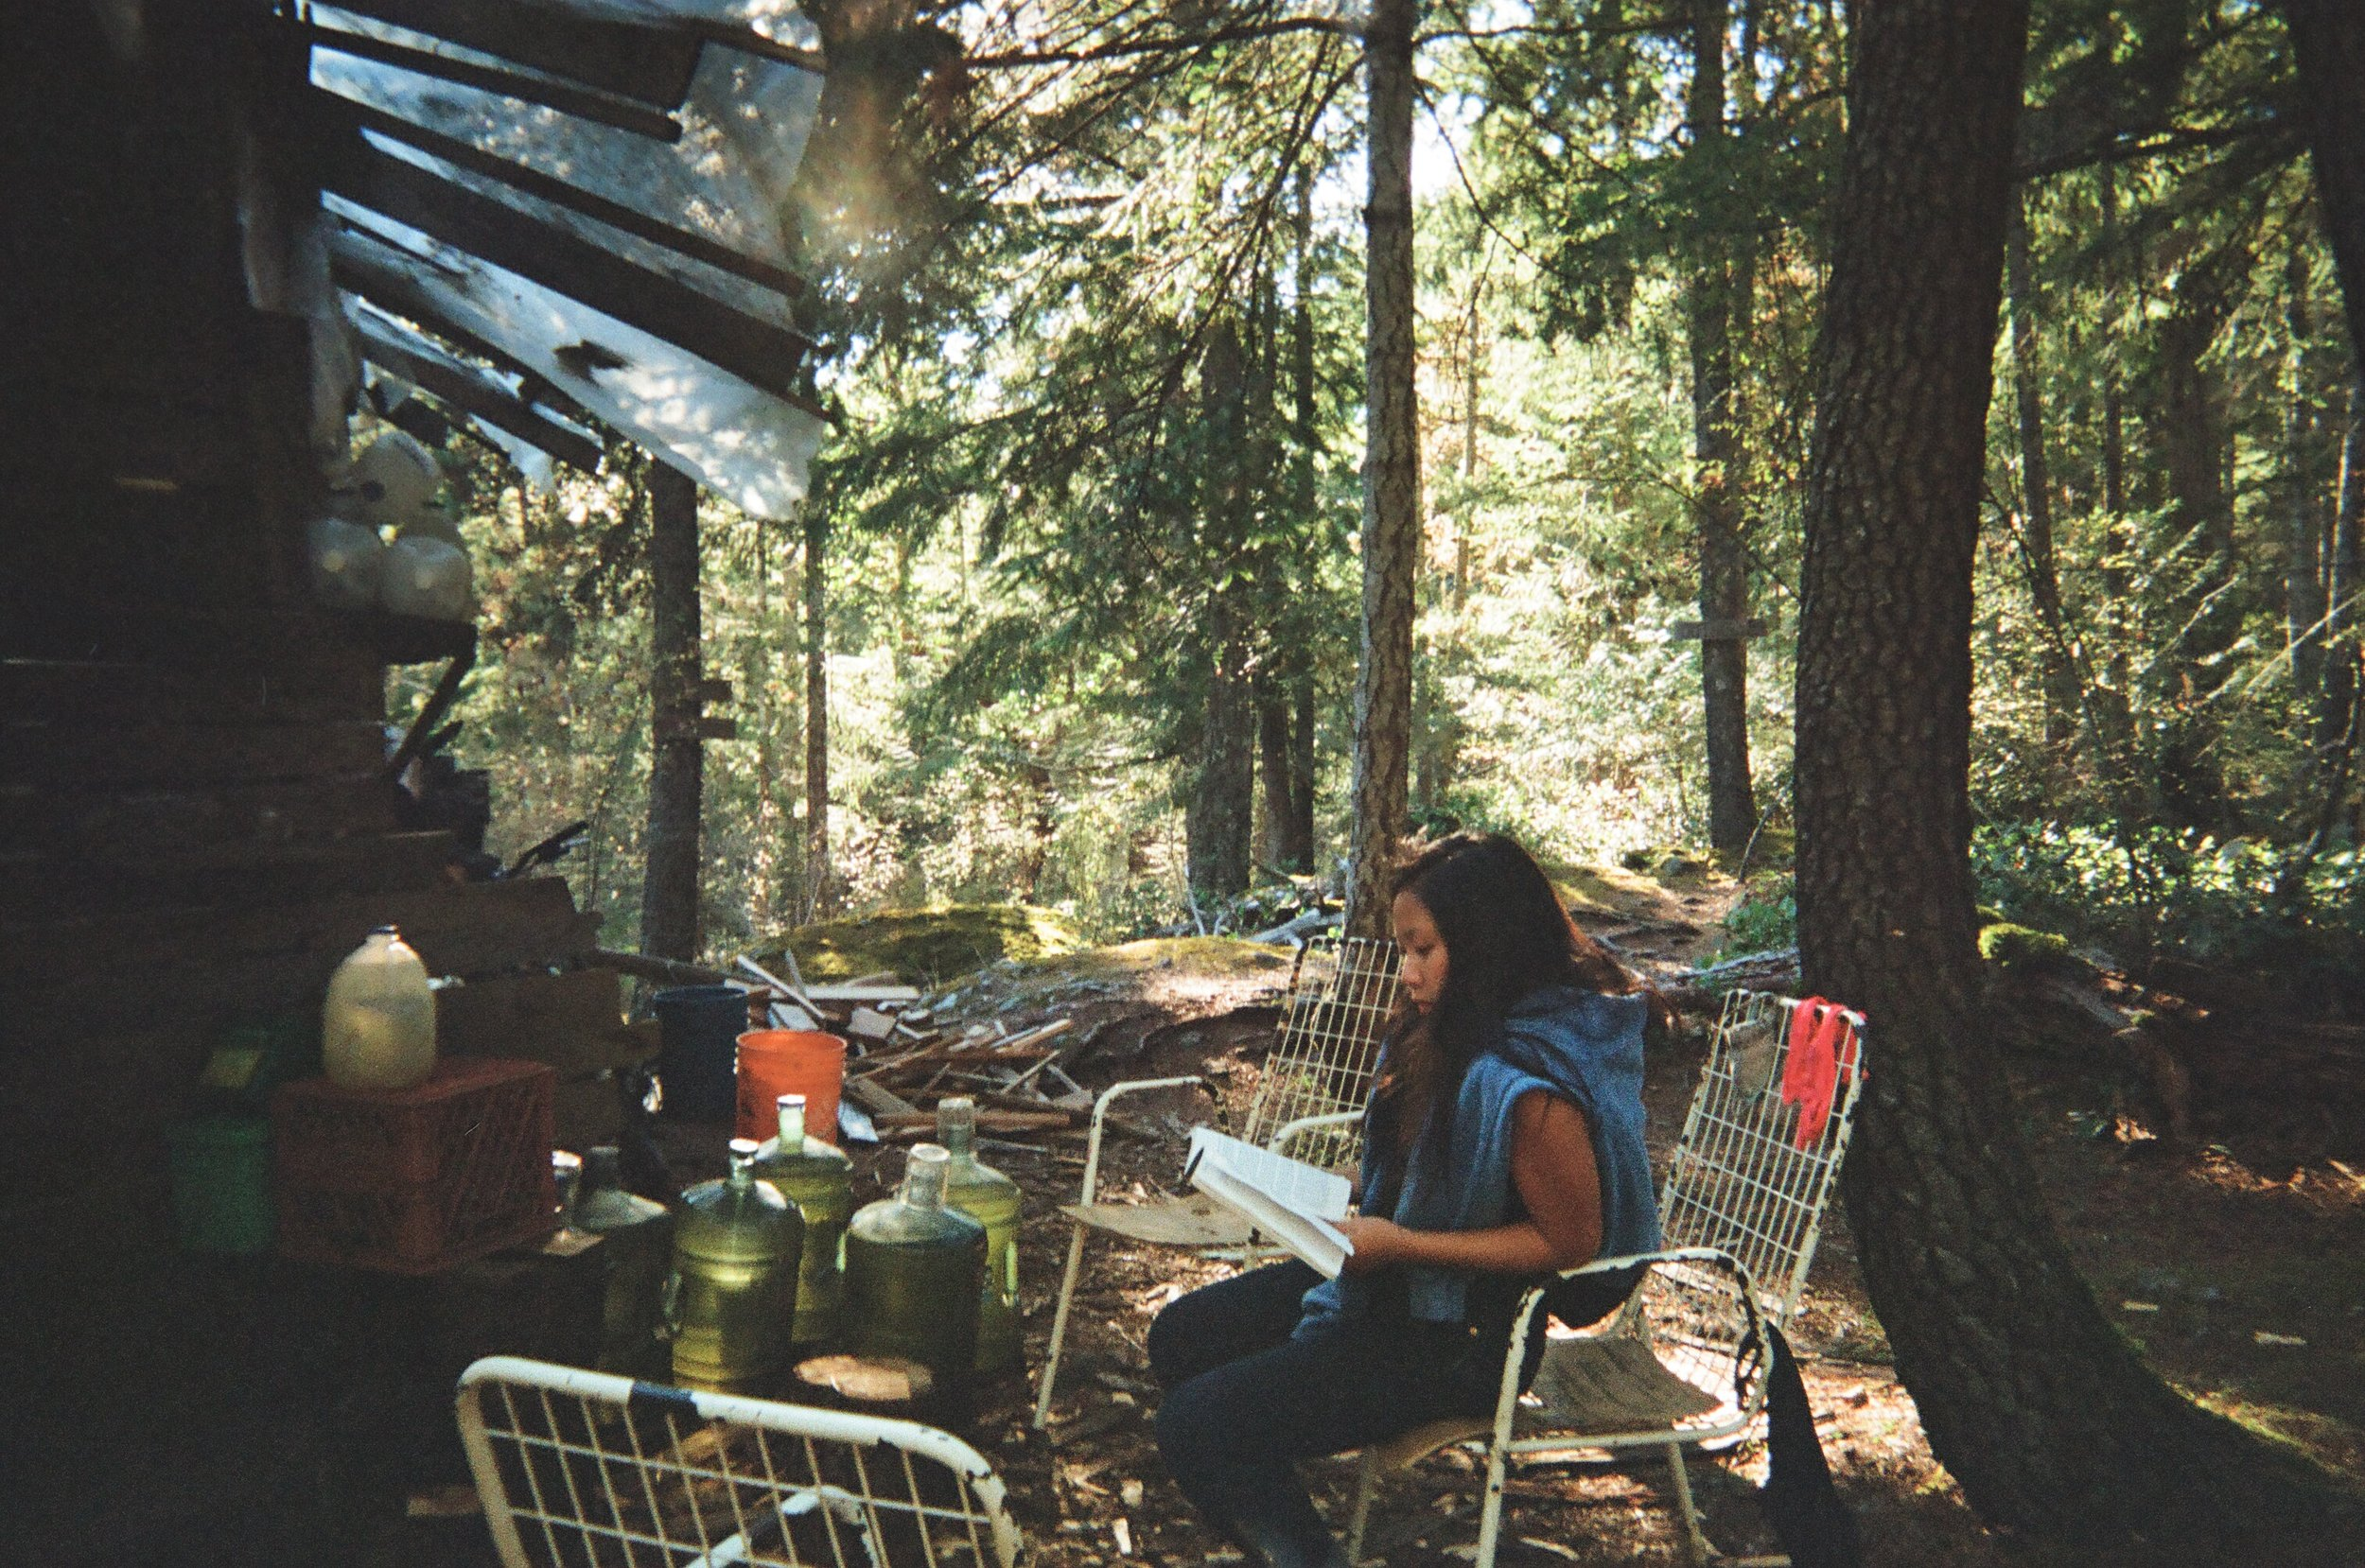 Cherry reading at the yurt, by jugs of collected rainwater, snapped with my Konica on 35mm film.